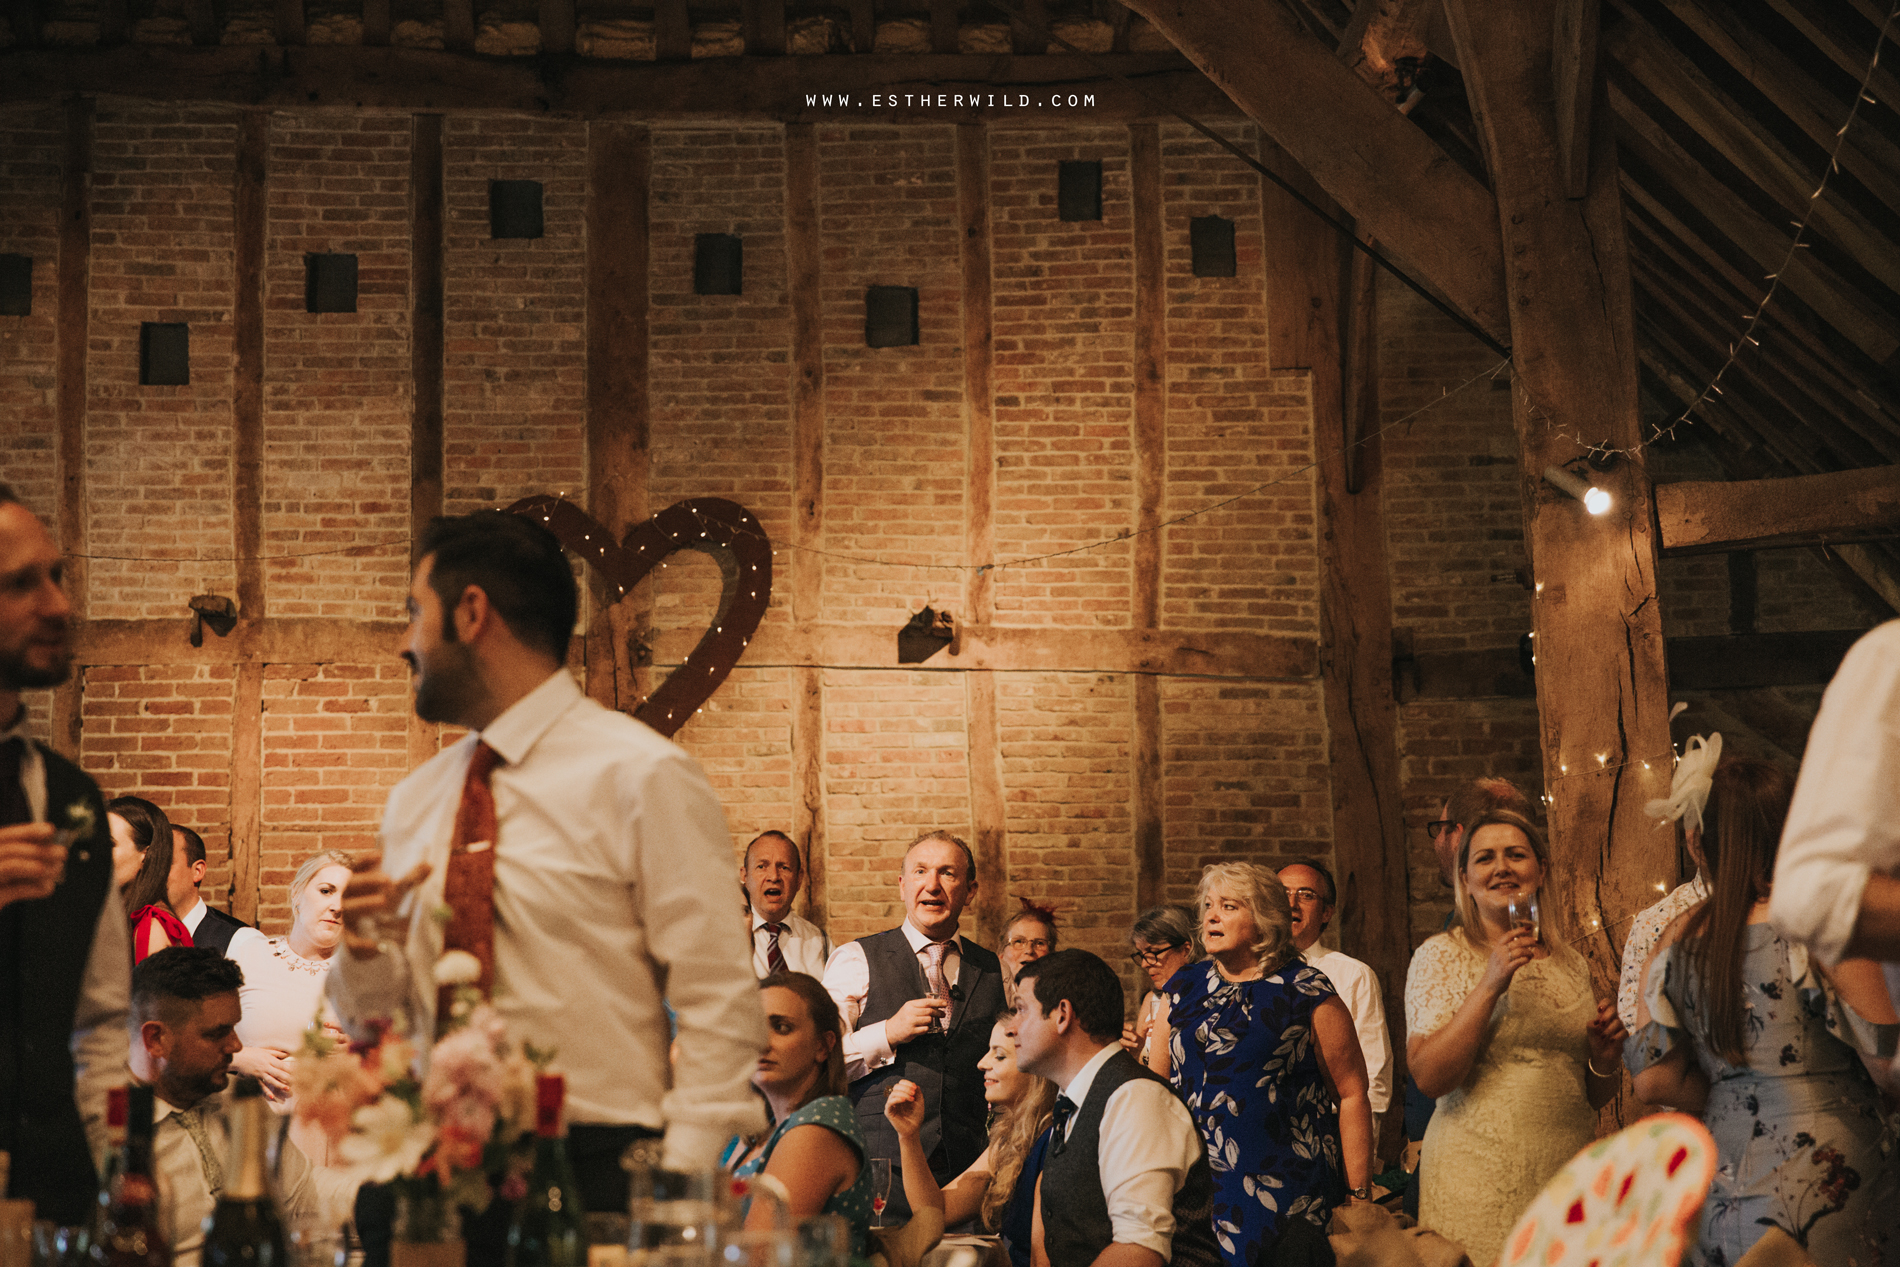 The_Red_Barn_Wedding_Kings_Lynn_Norfolk_IMG_2249.jpg